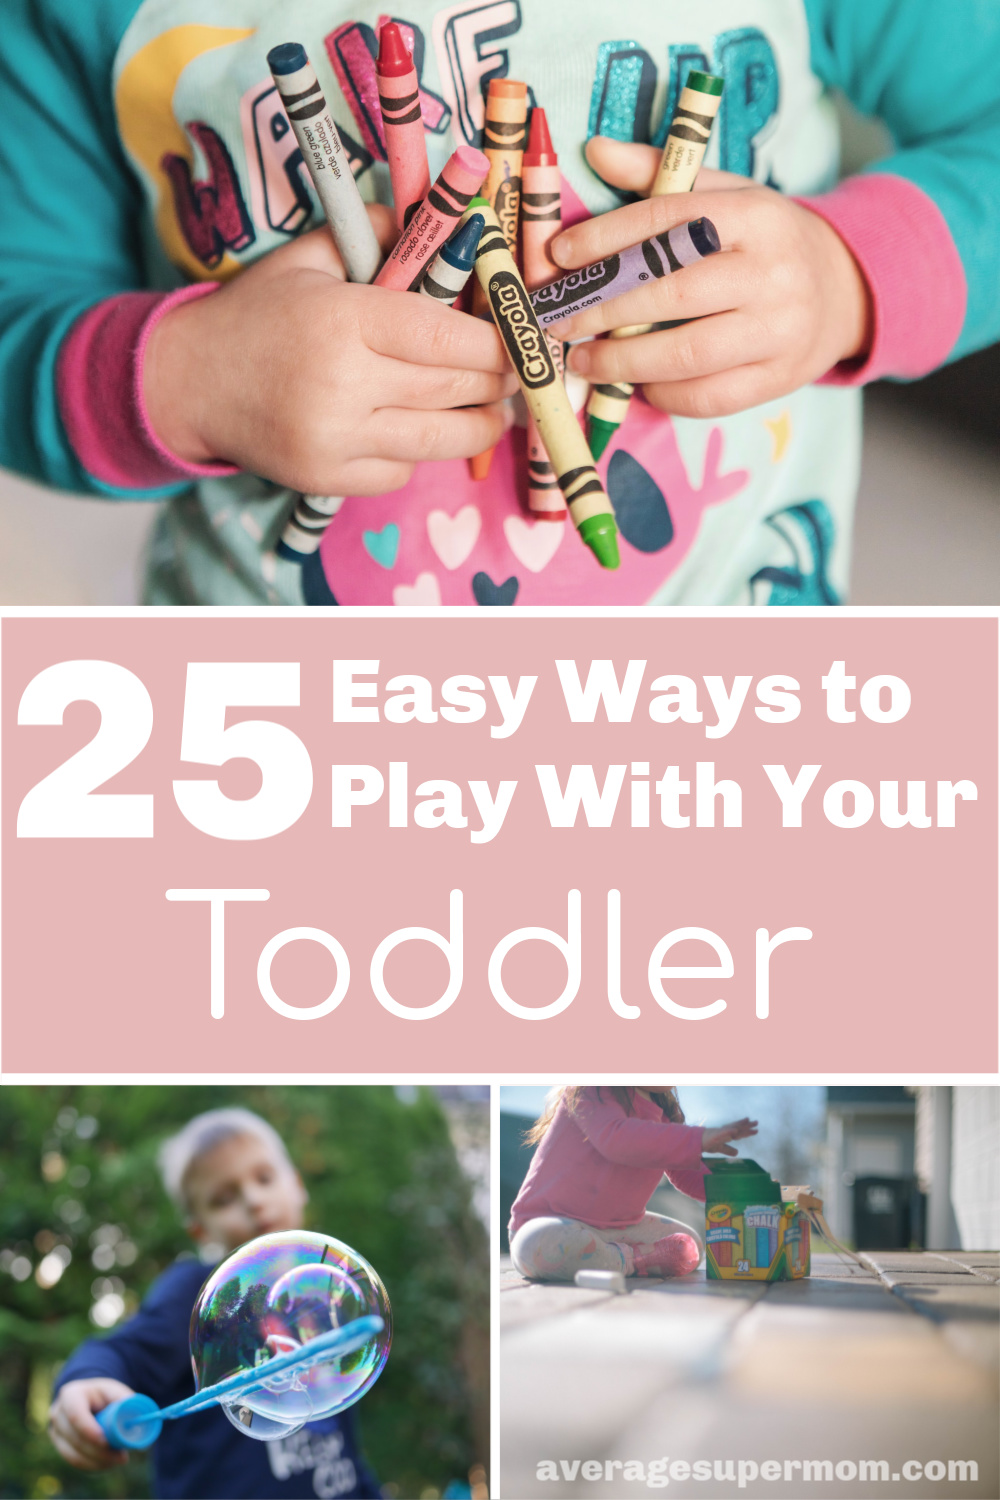 25 Easy Ways to Play With Your Toddler